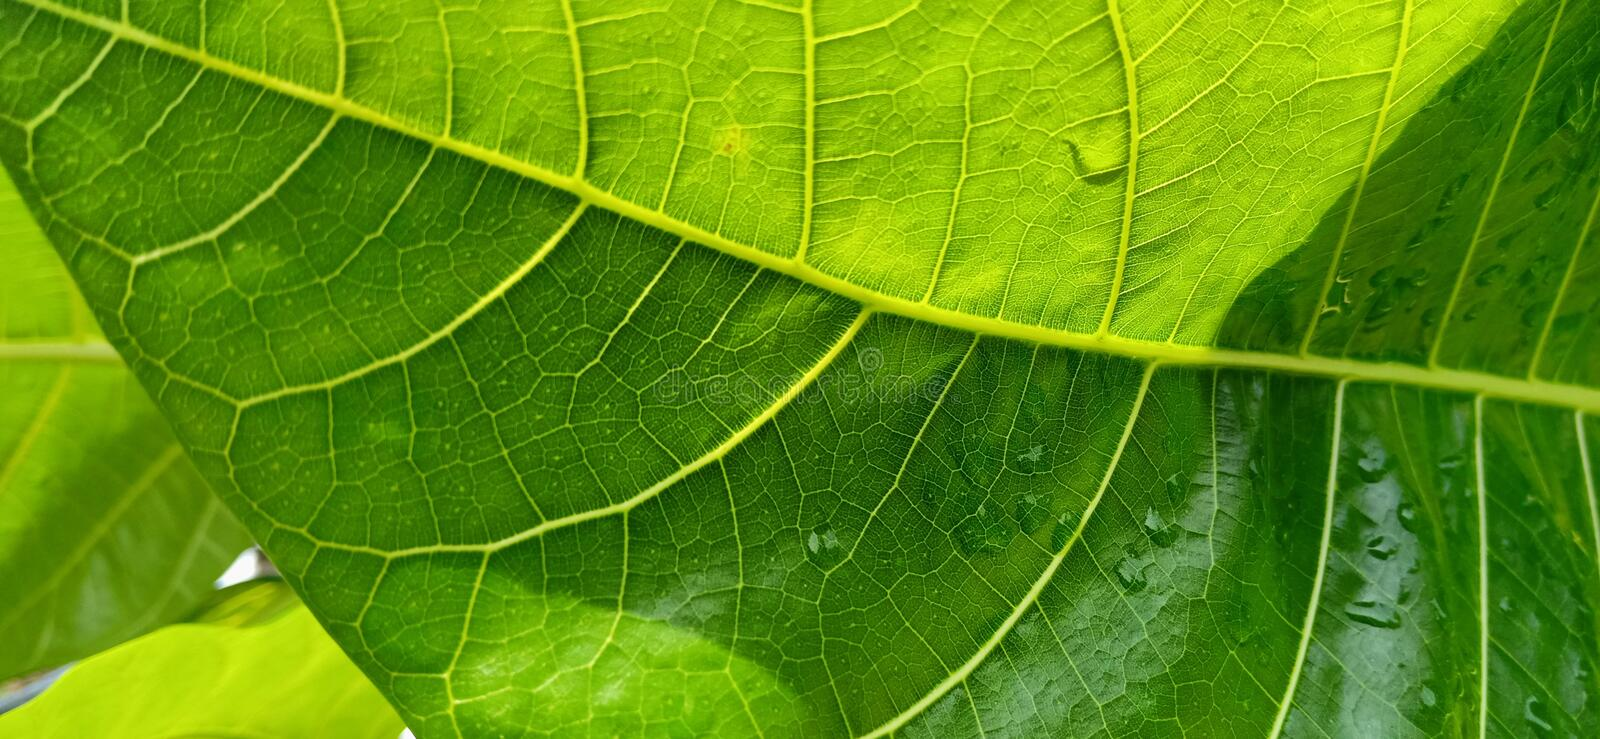 Texture green  foliage in sunnyday royalty free stock image